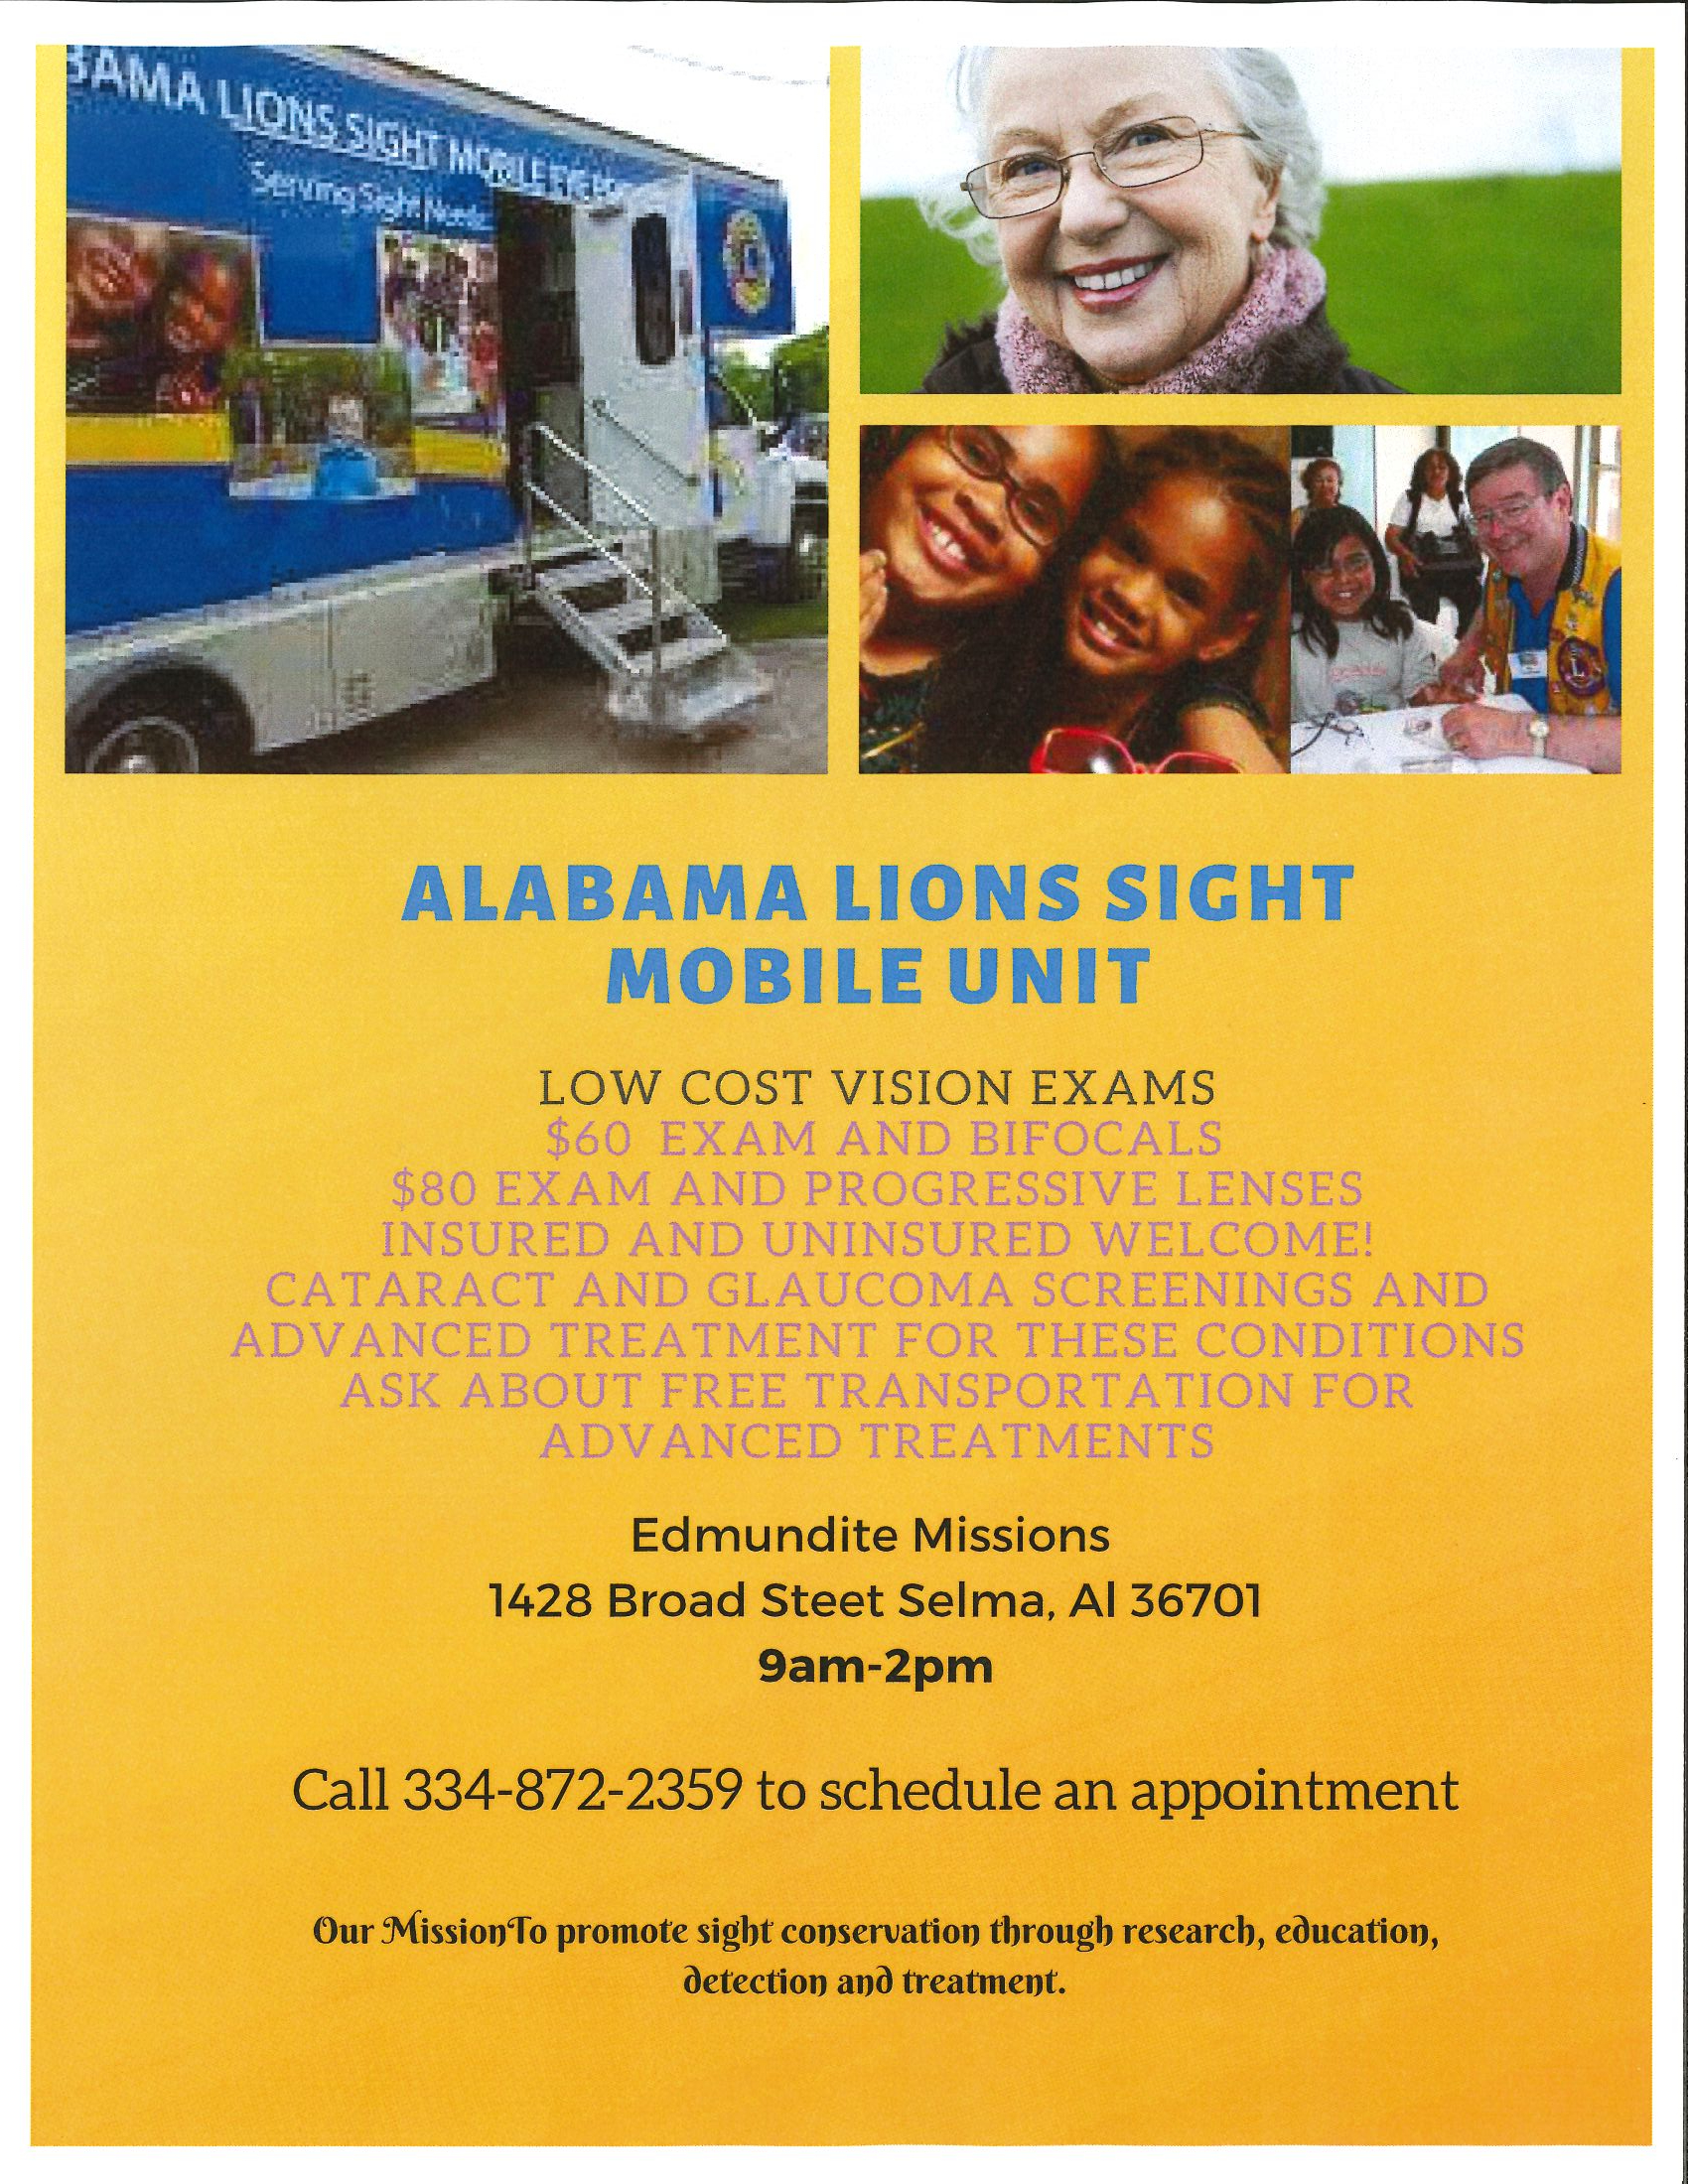 Alabama Lions Sight Mobile Unit